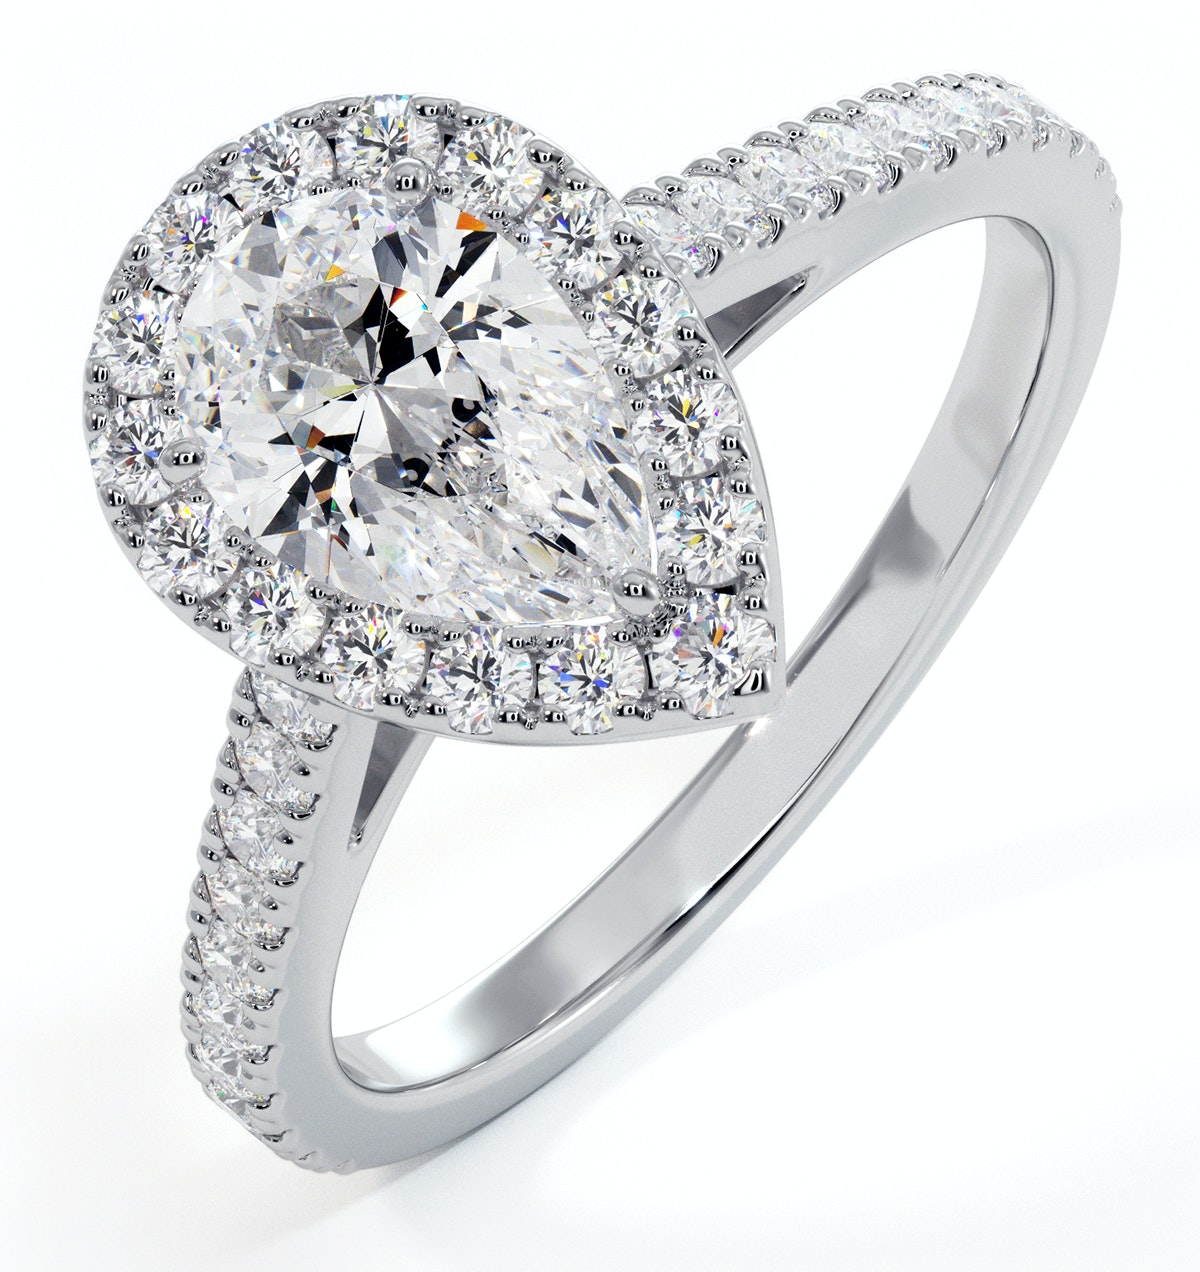 Diana GIA Diamond Pear Halo Engagement Ring Platinum 1.35ct G/SI2